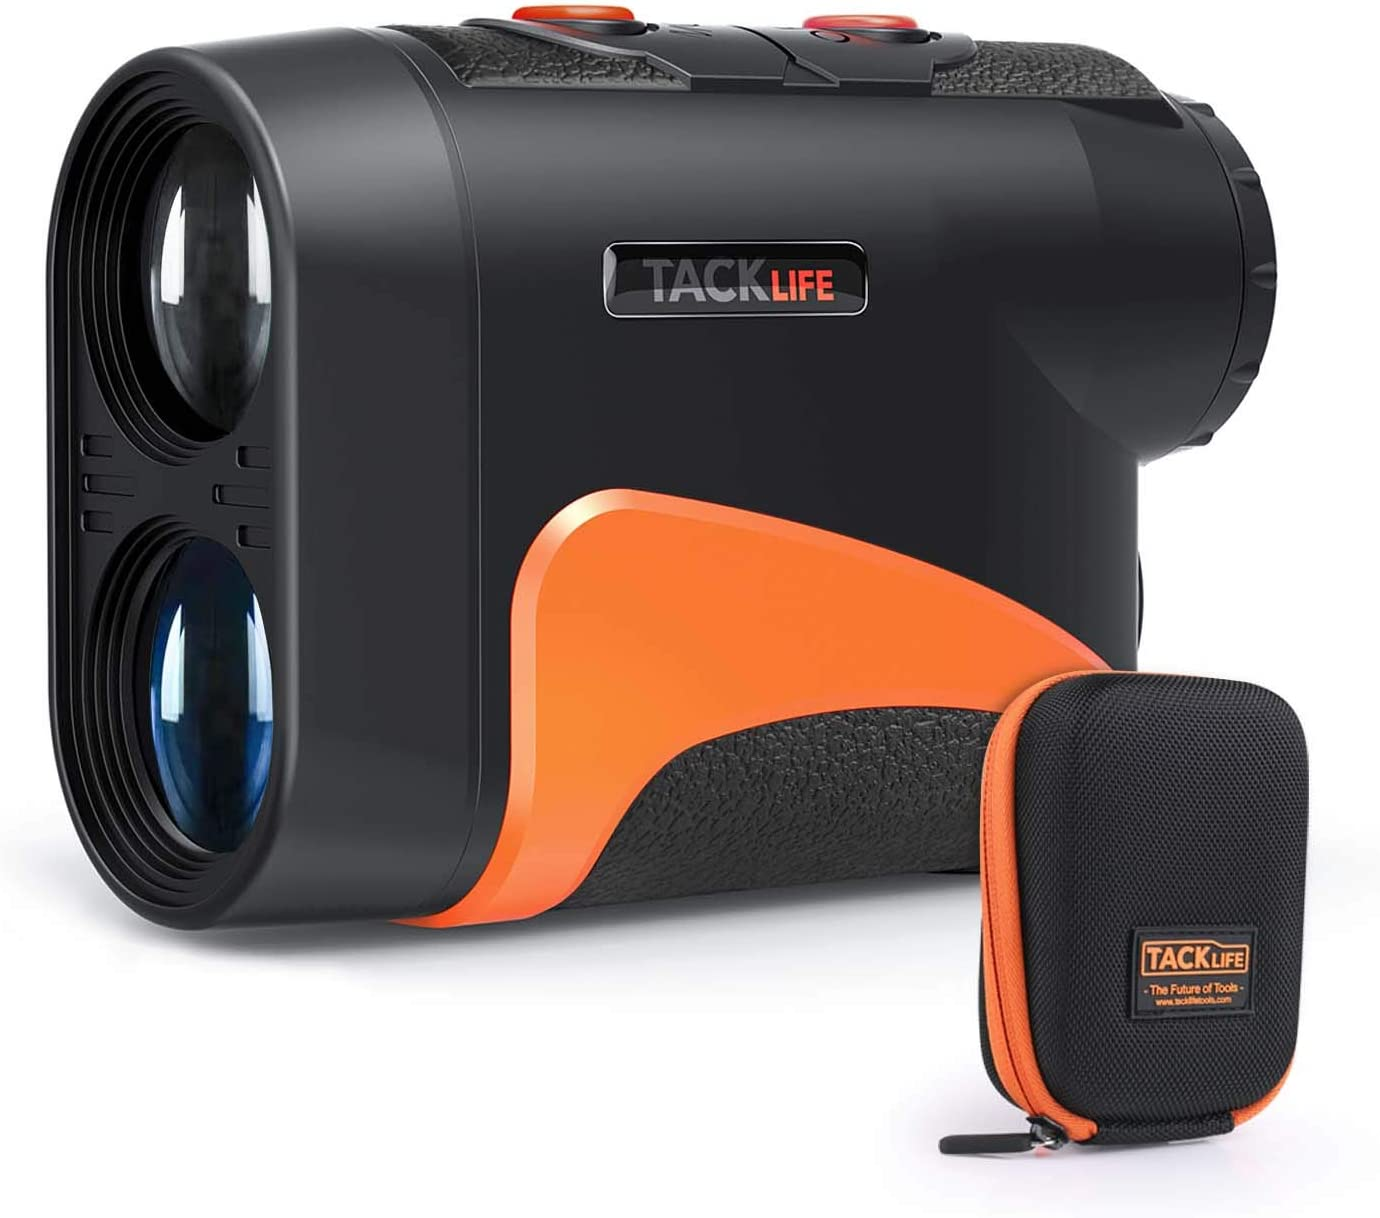 TACKLIFE Golf Rangefinder 600 Y,Adjustable Eyepiece,6X Magnification with Slope/Flag-Lock/Distance/Continuous Measurement,Ideal for Golf, Hunting, Hiking, Outdoor Using- MLR04